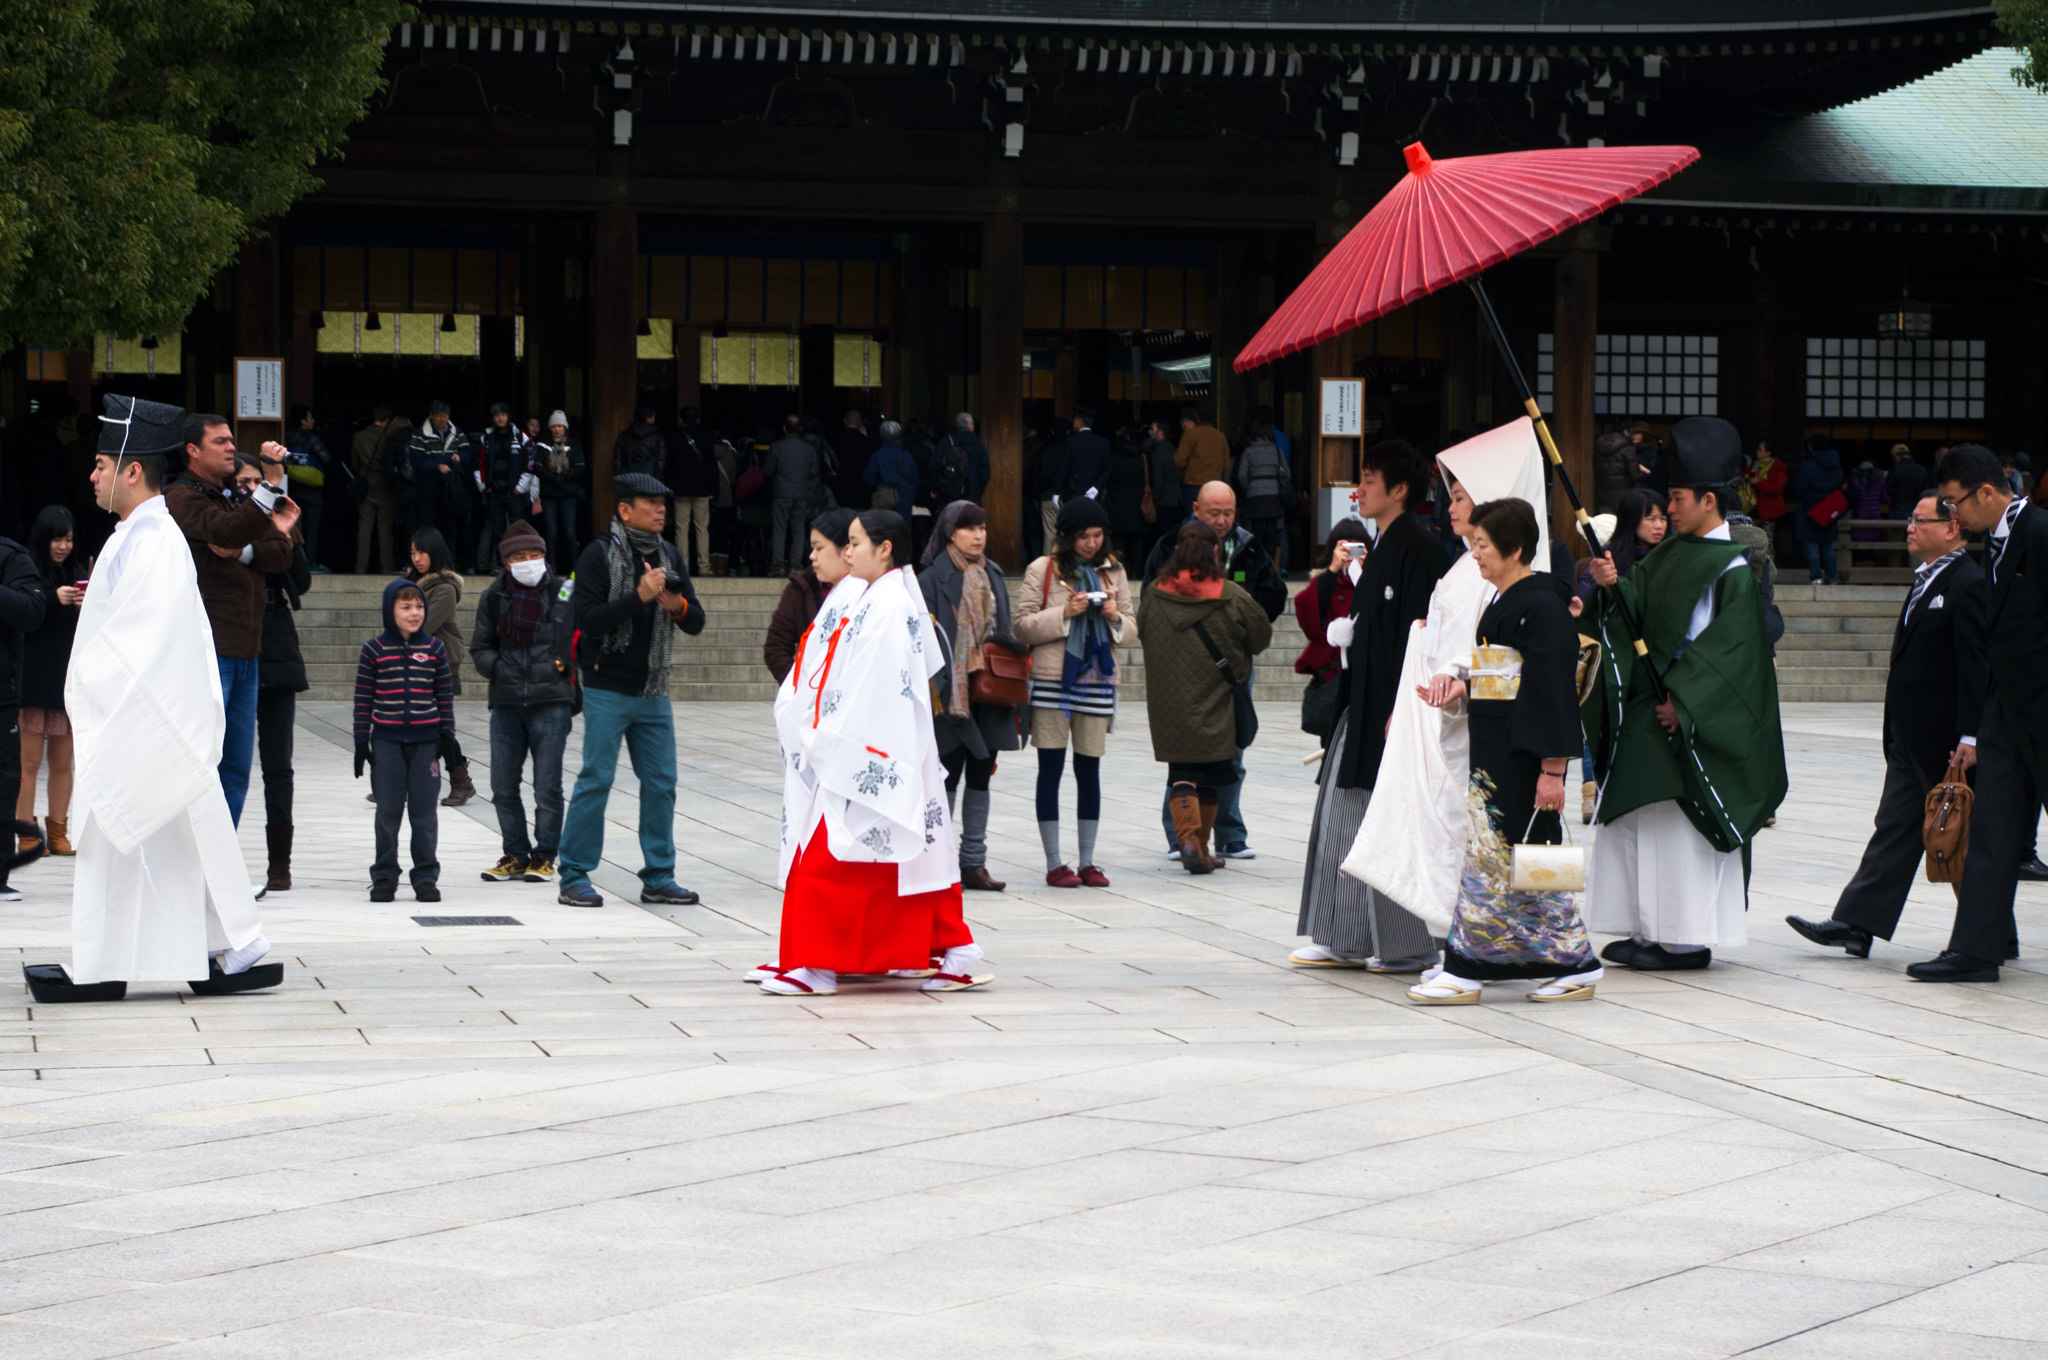 Traditional Japanese wedding ceremony at the Meiji Shrine in Tokyo.